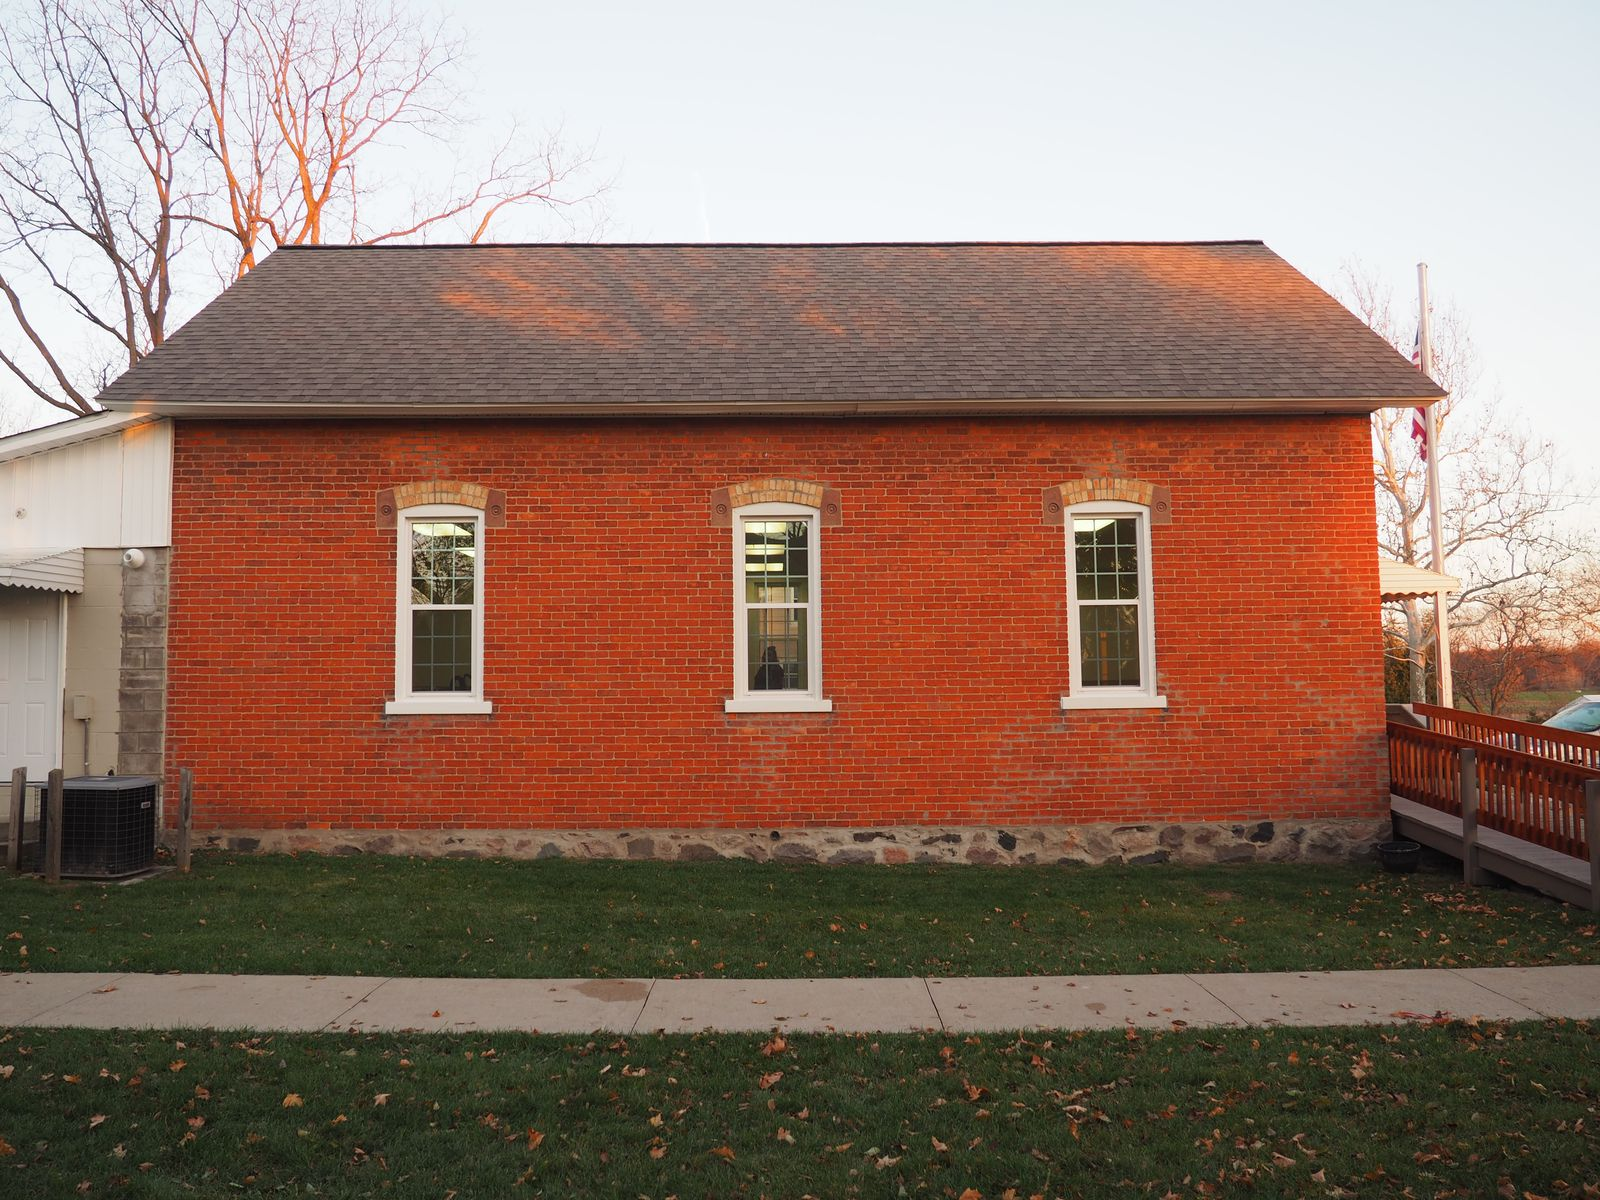 West-facing side of Bunker Hill Township Hall (12 November 2016)